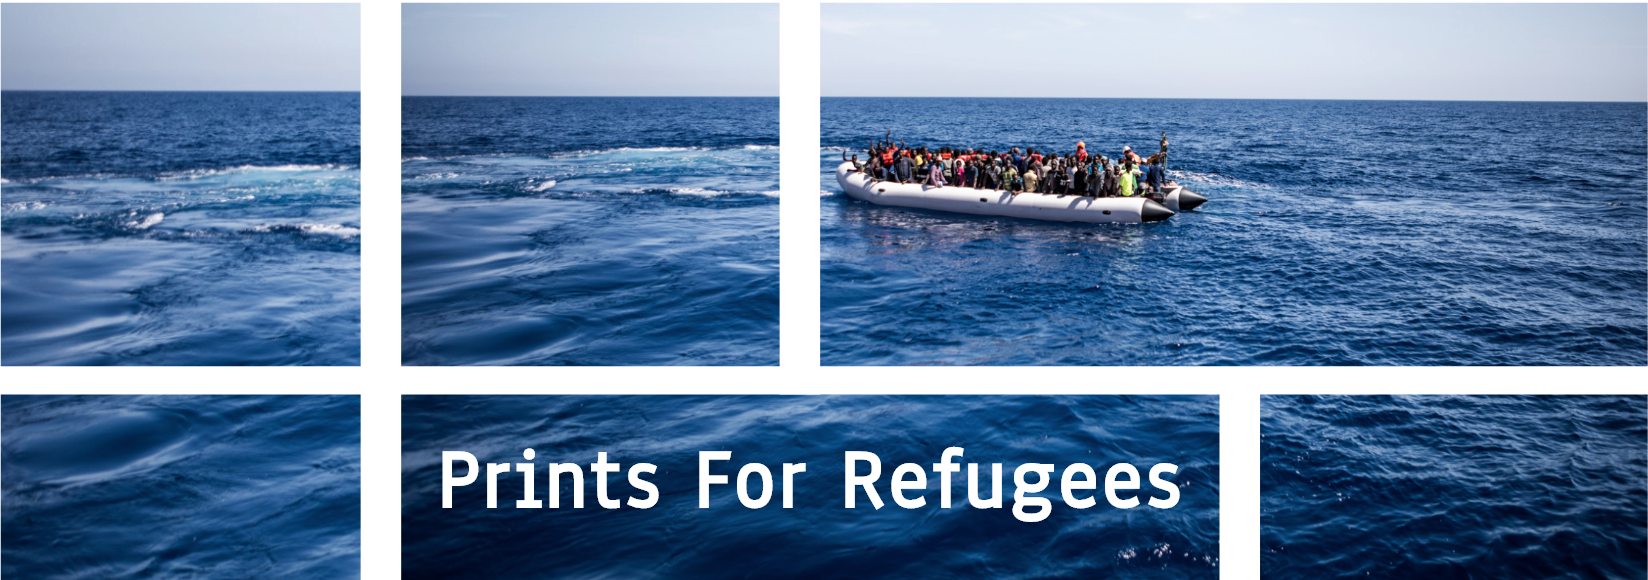 Prints for Refugees